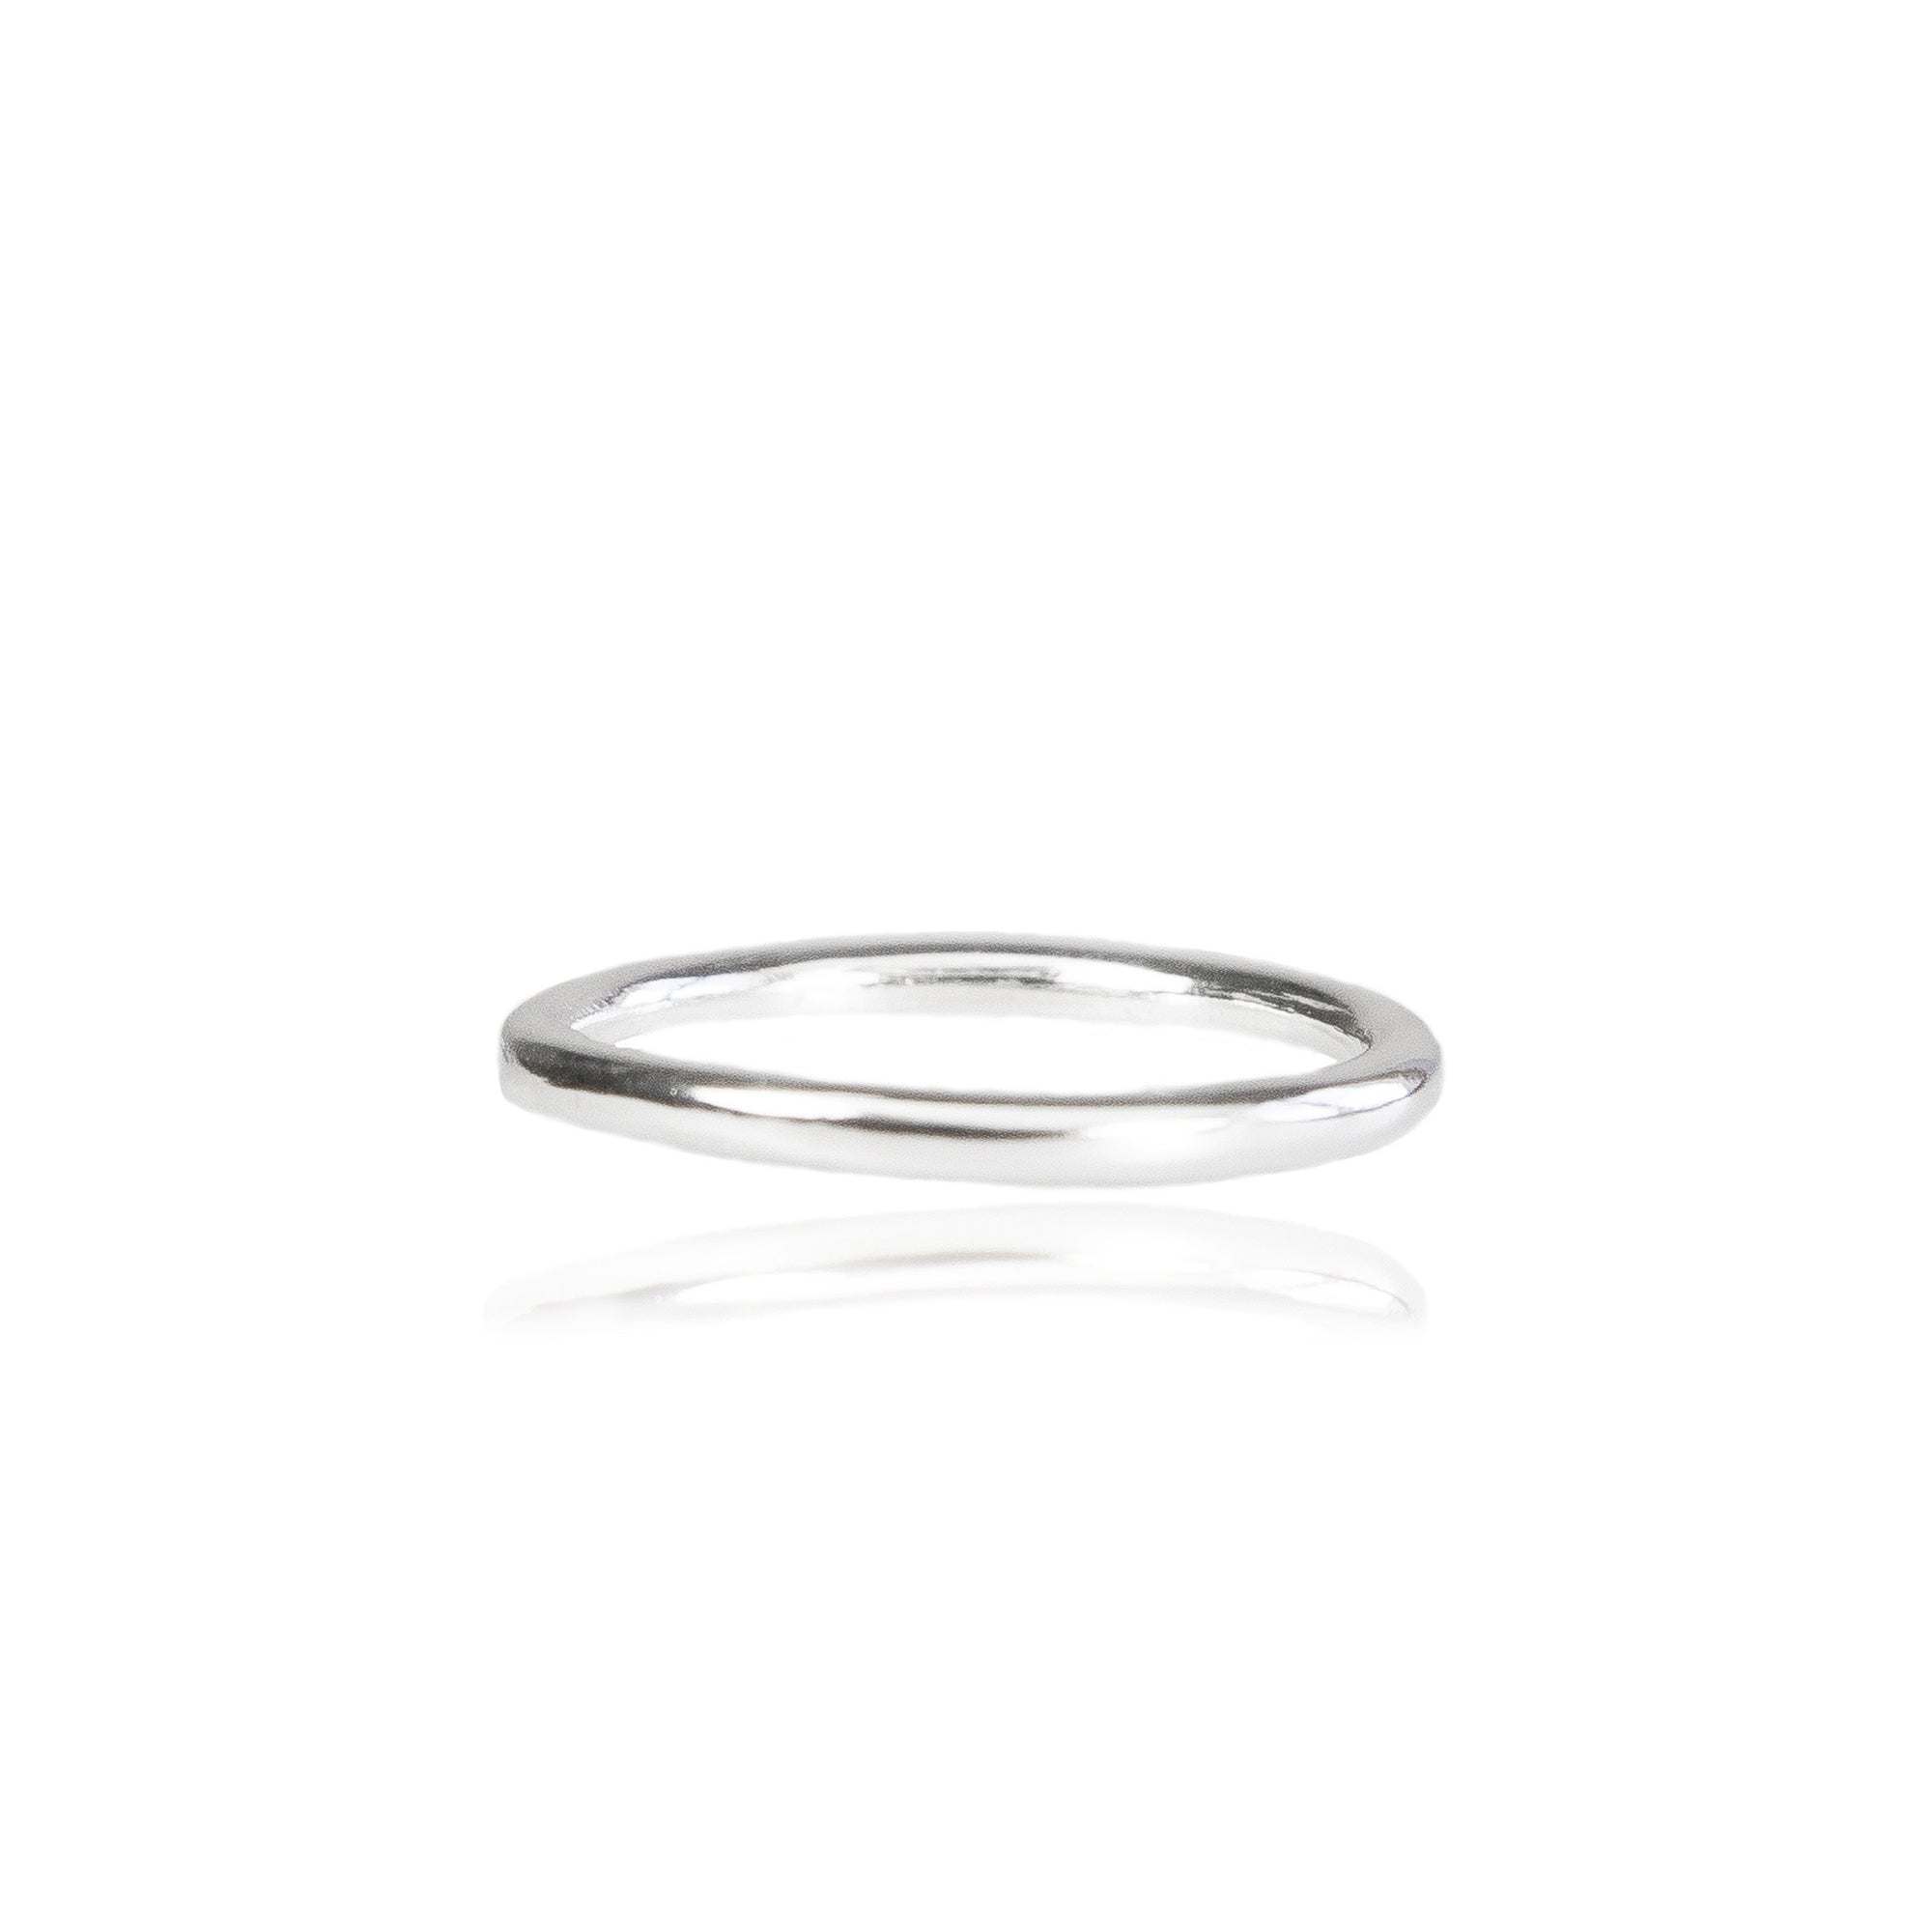 2mm Halo Wedding Ring in 18ct White Gold